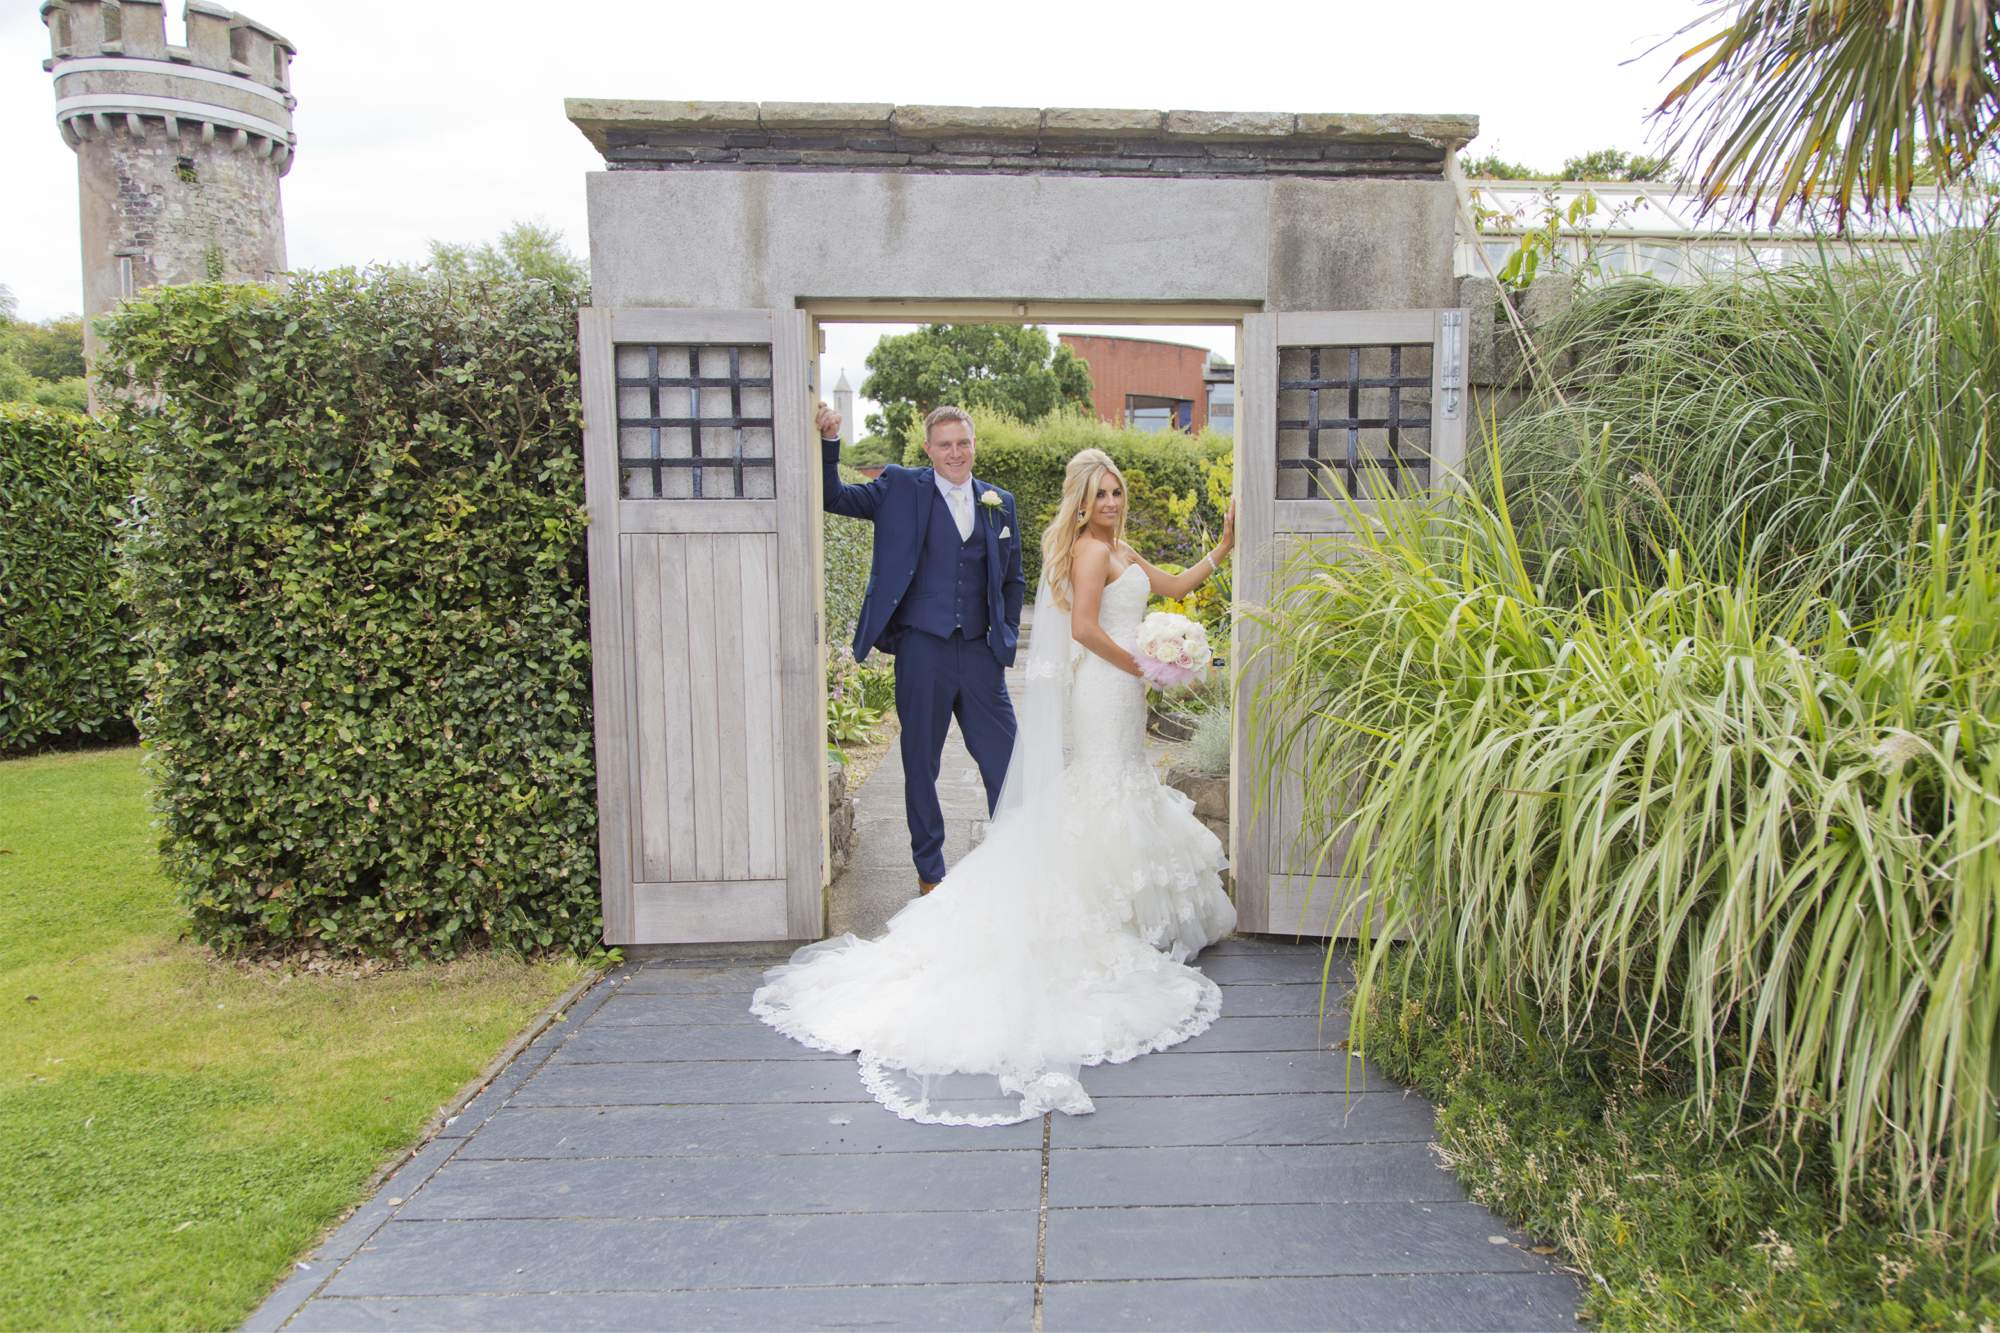 Wedding Photographer Newbridge, Call 0861946237,  Wedding Photography Naas, Kildare by Aoileann Nic Dhonnacha, Ireland